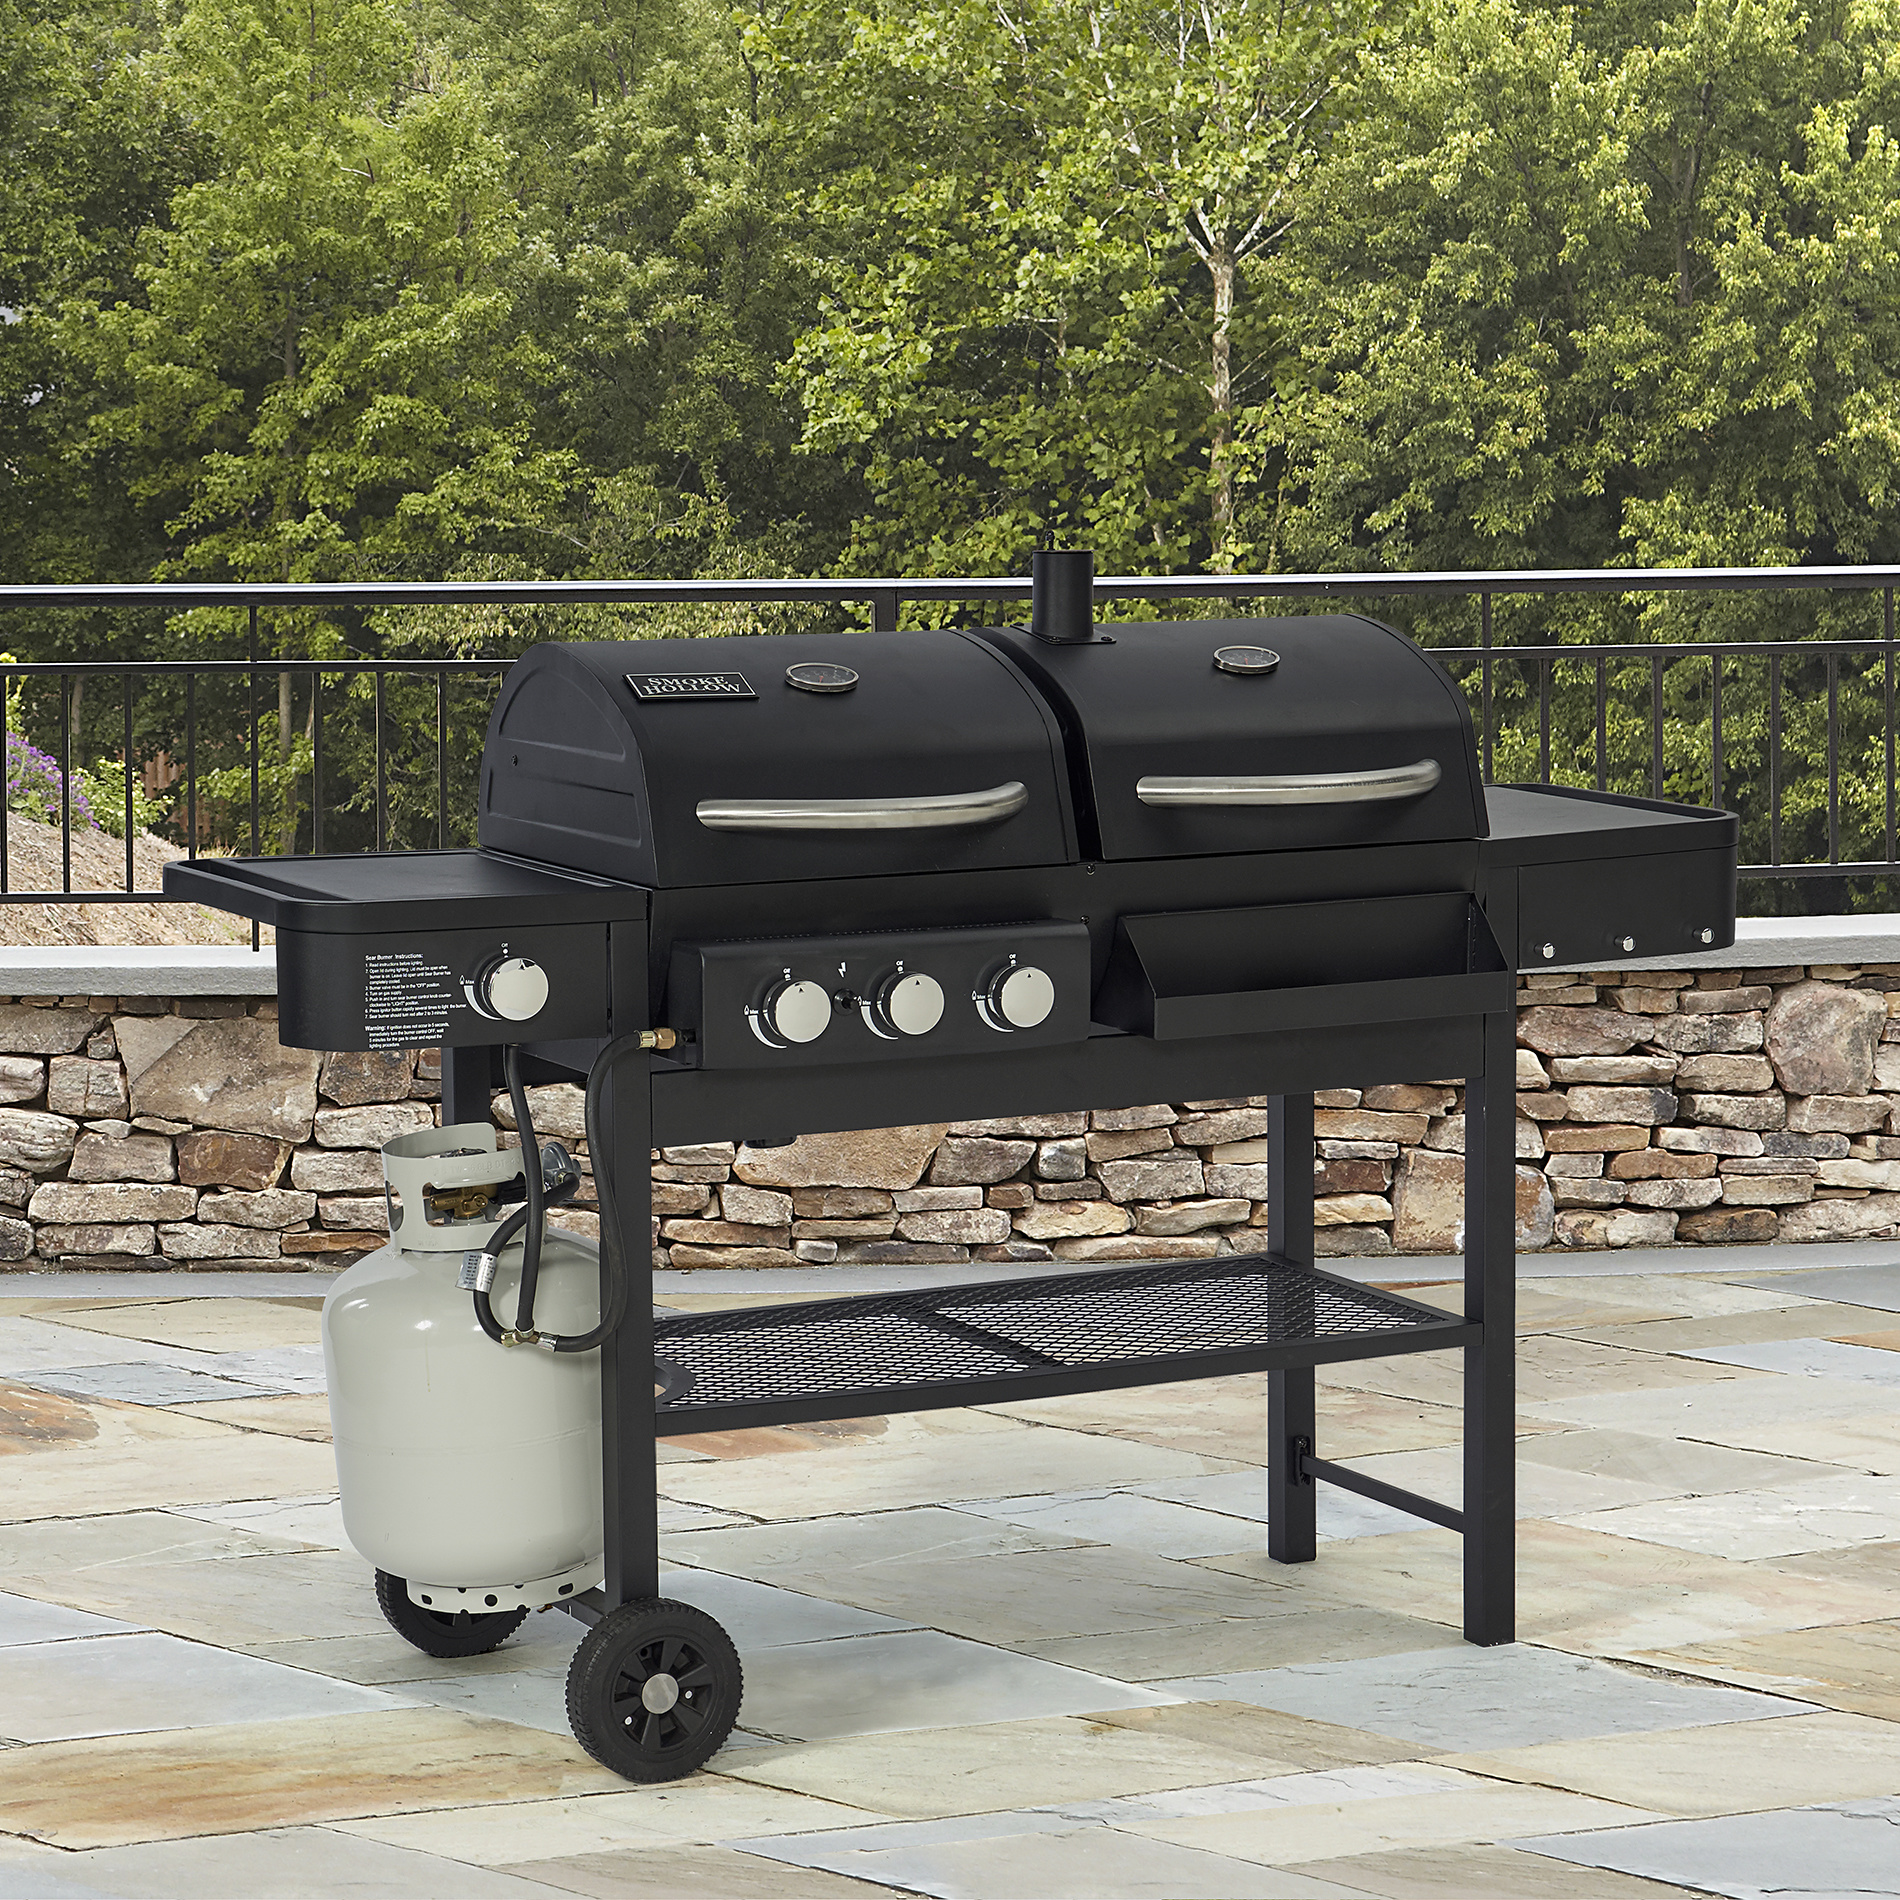 Combi barbecue